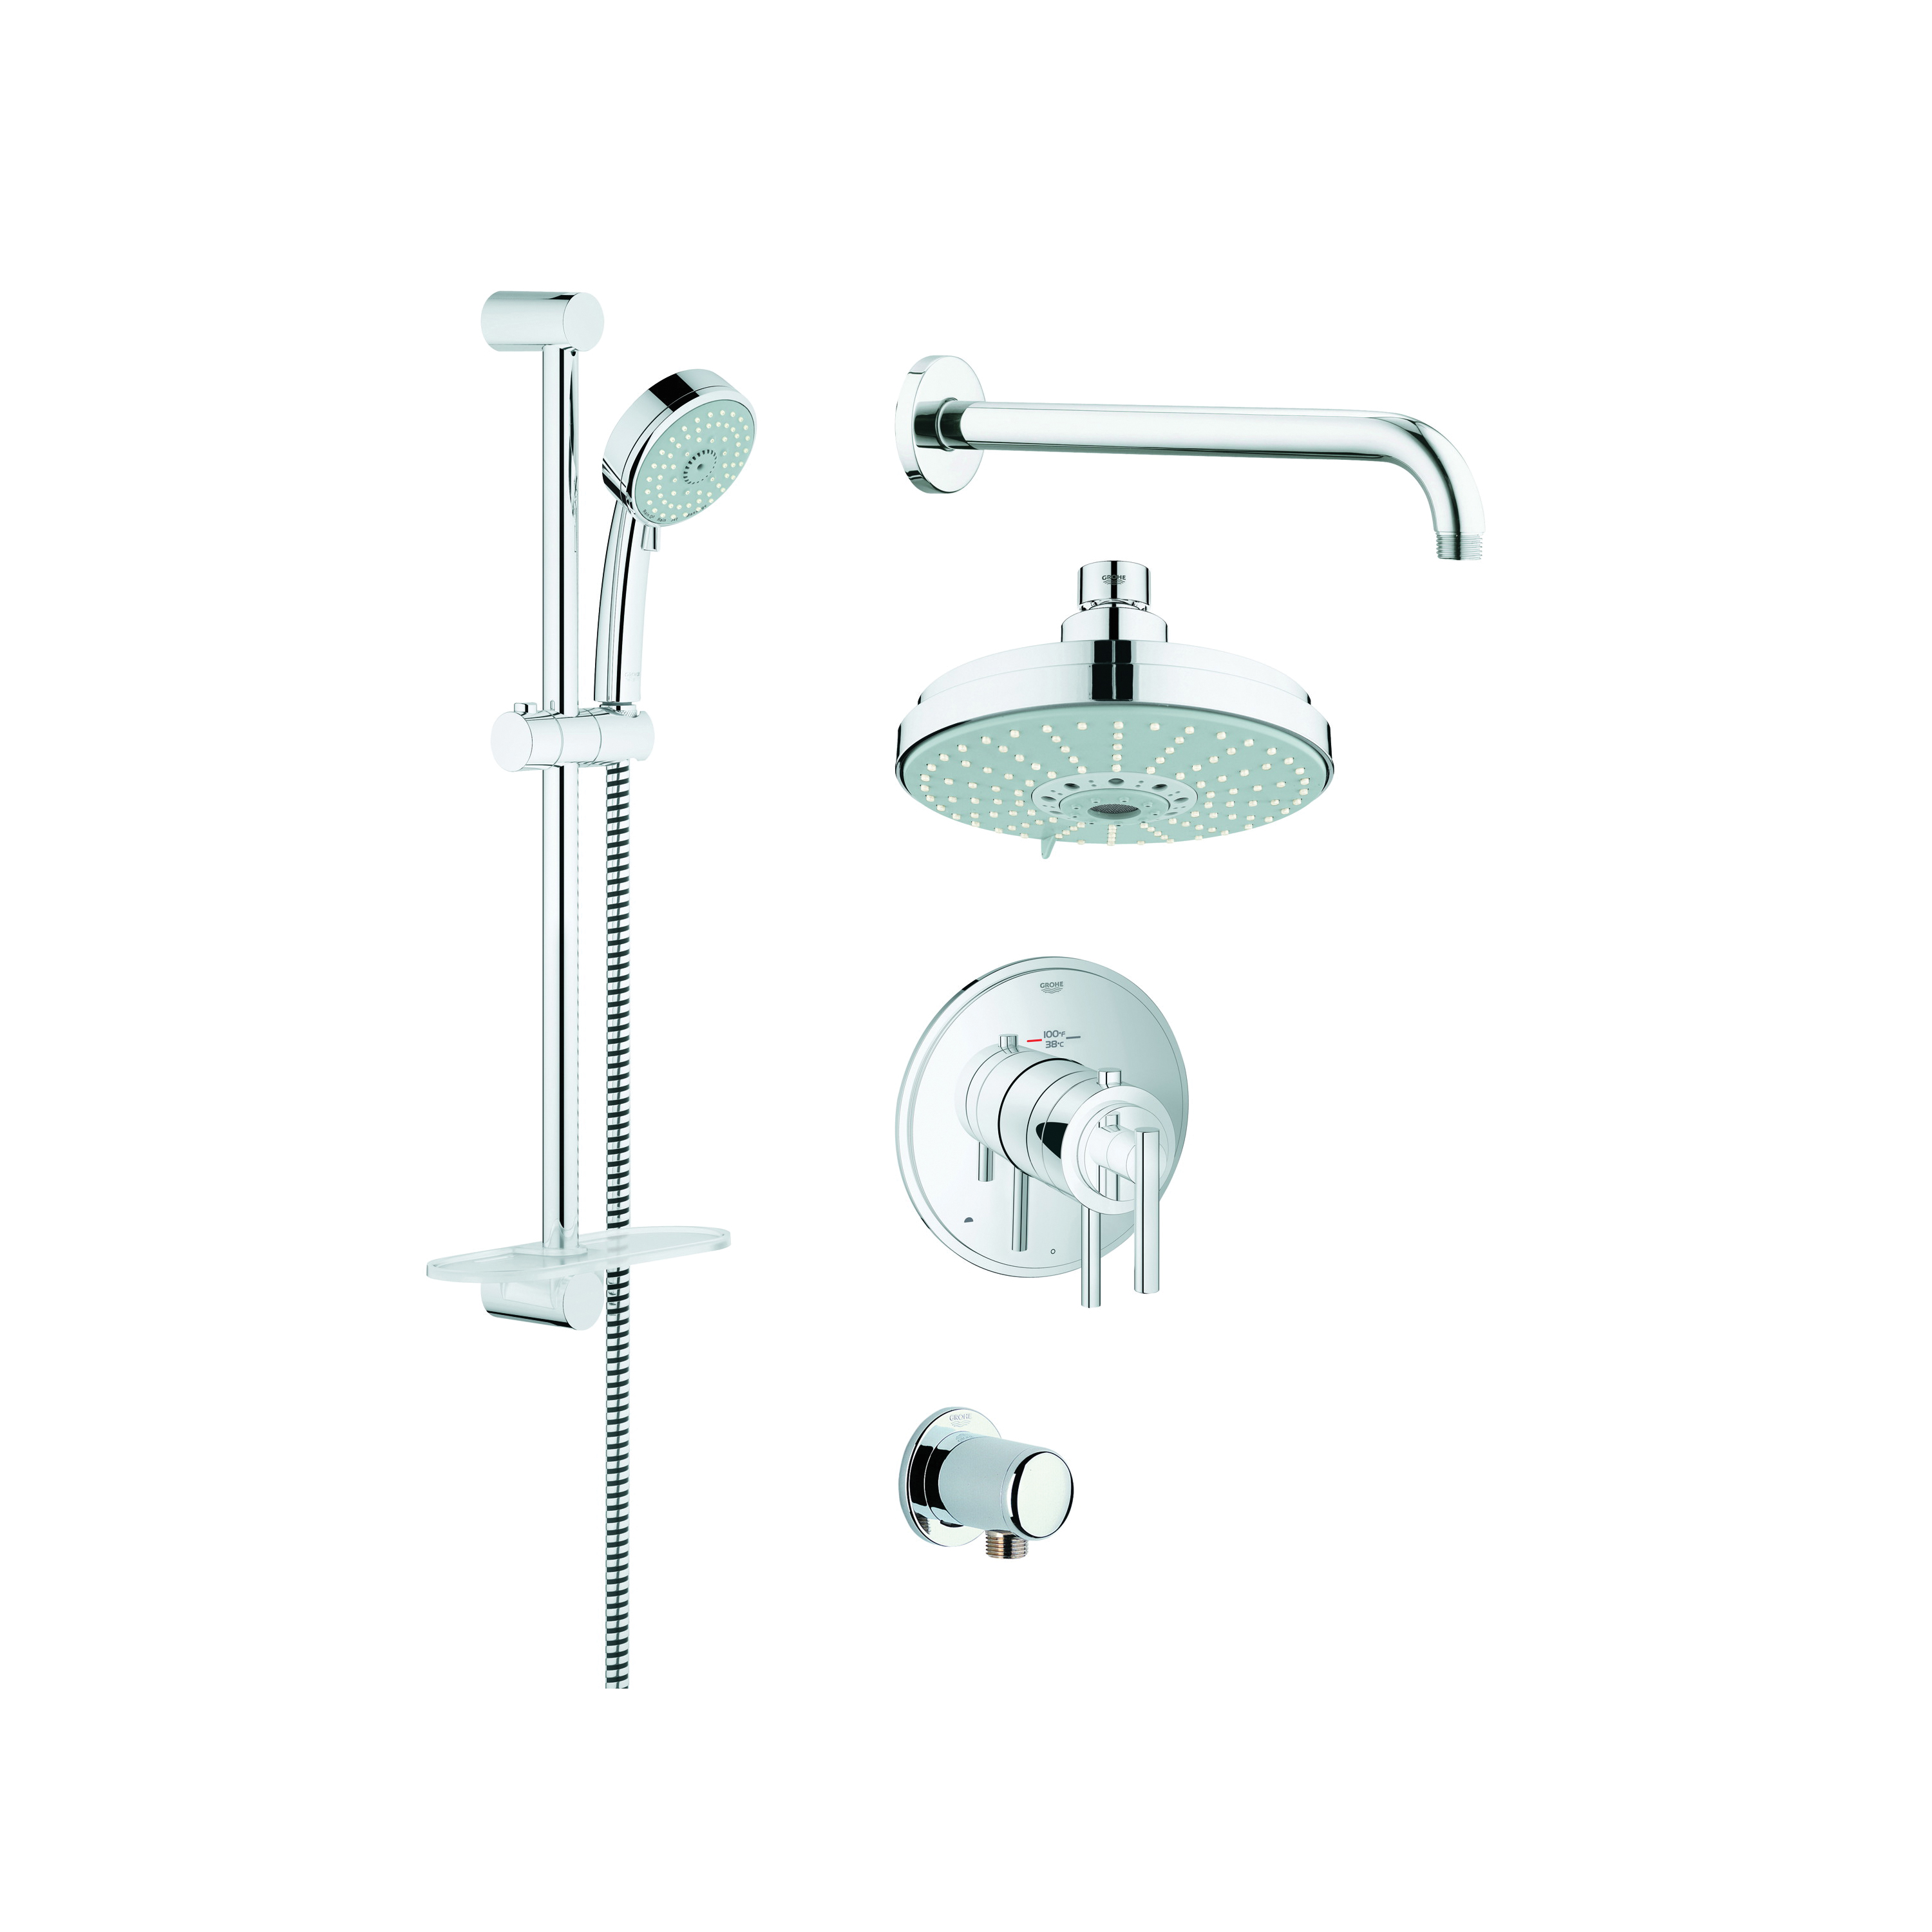 GROHE 35056000 GrohFlex™ Thermostatic Valve Shower Set, 2.5 gpm, 68-7/8 in L Hose, StarLight® Chrome, Import